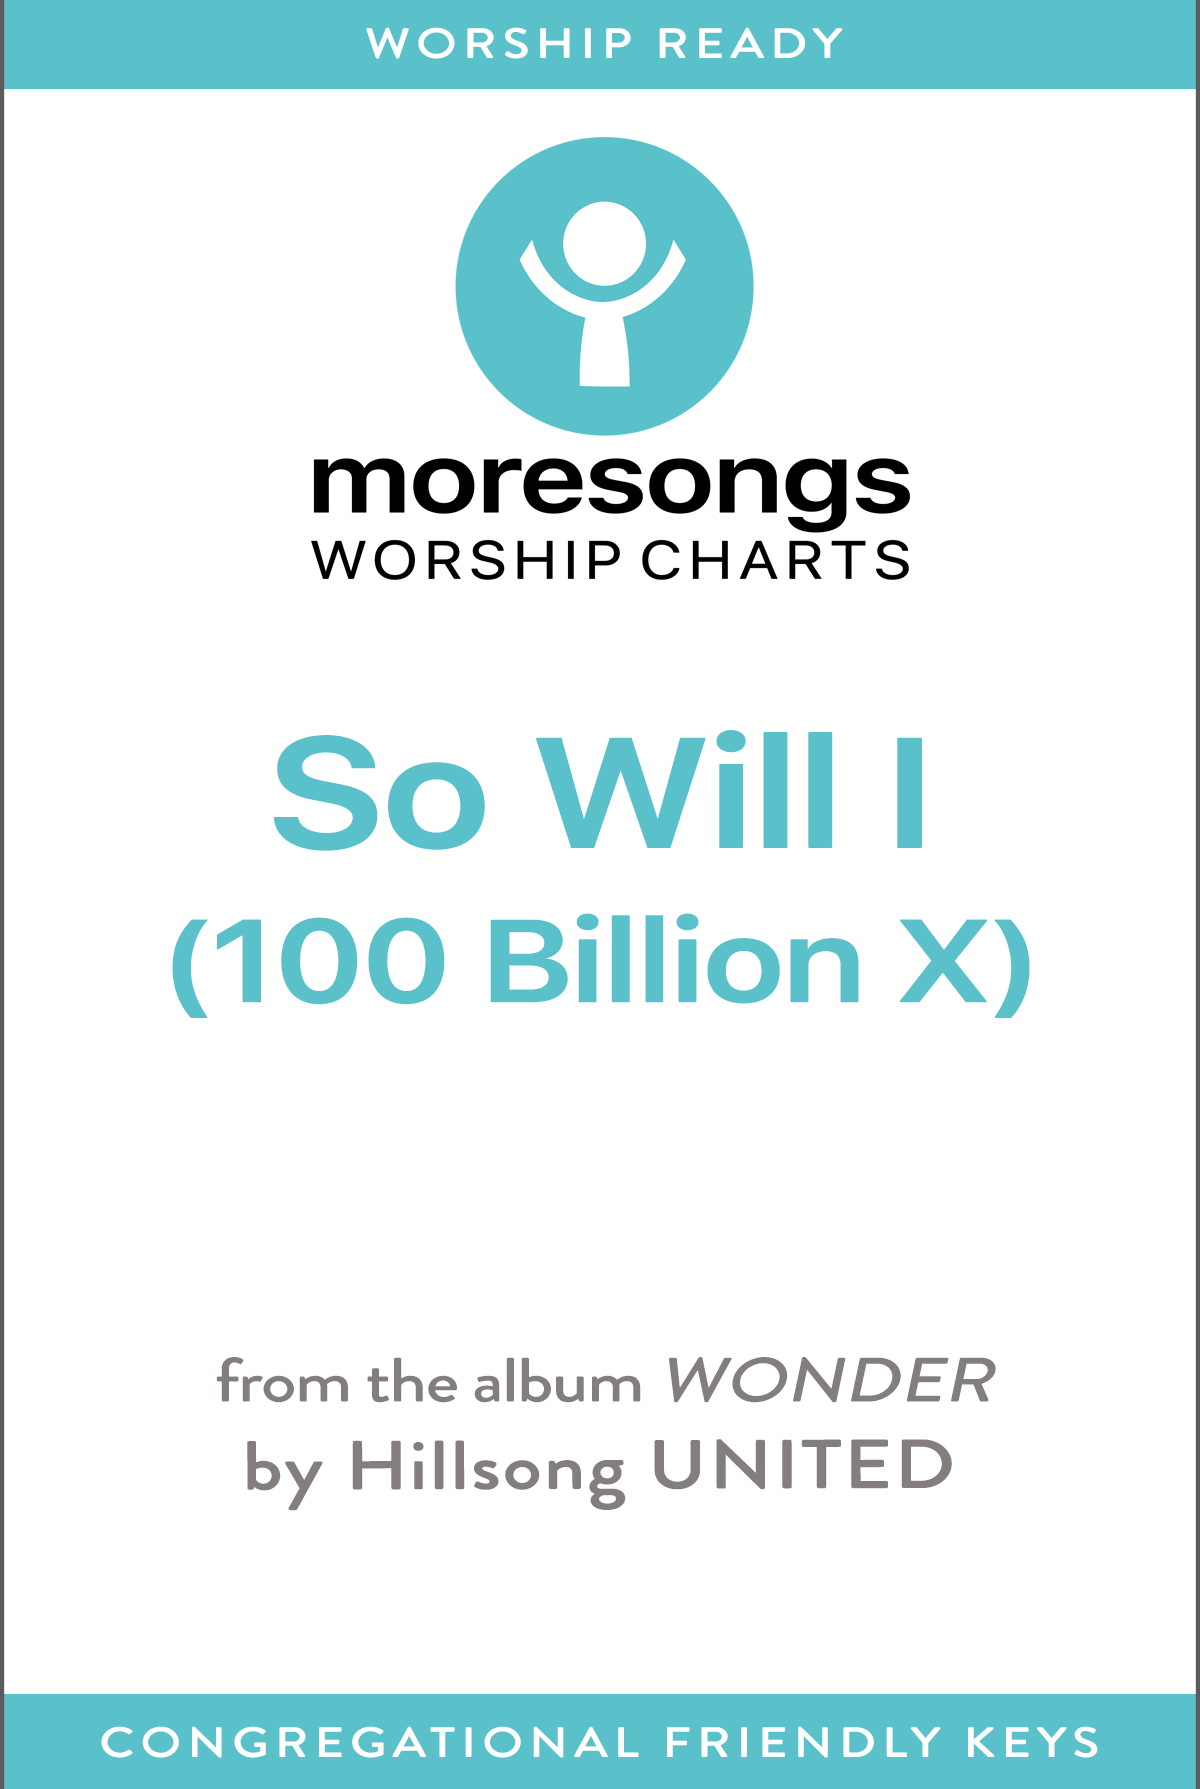 So Will I (100 Billion X)